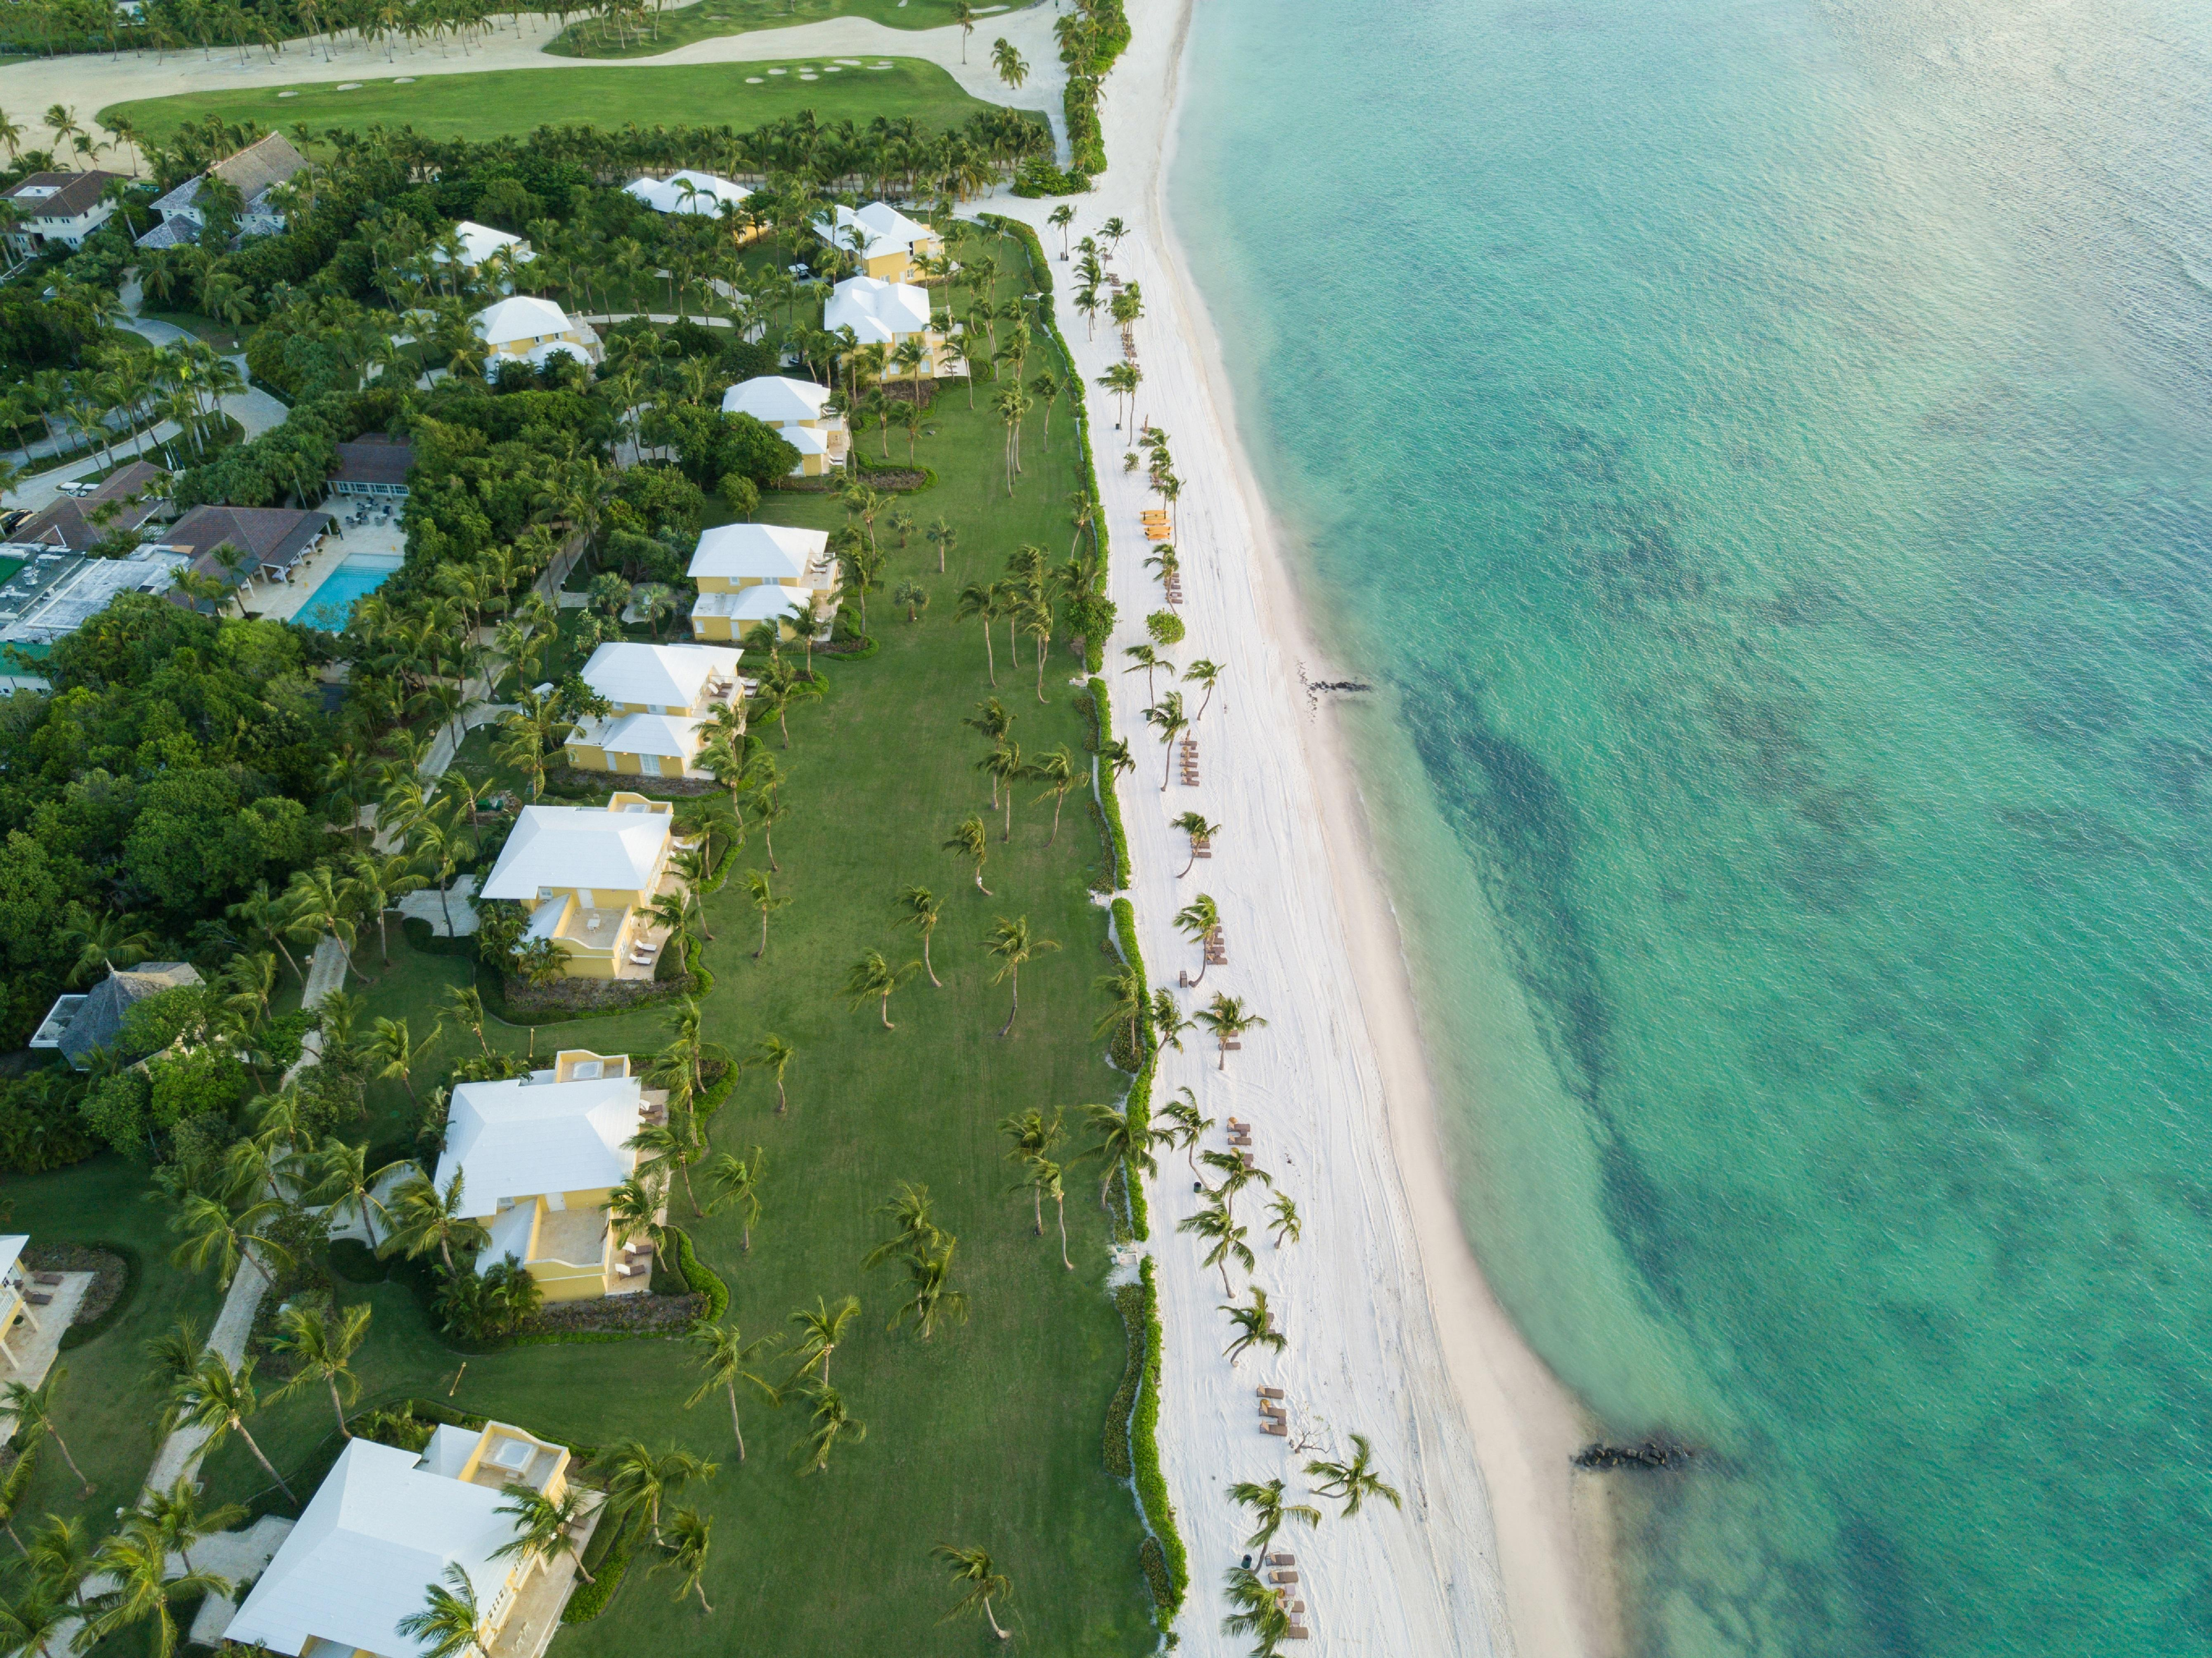 Tortuga Bay Villa and Beach Overview